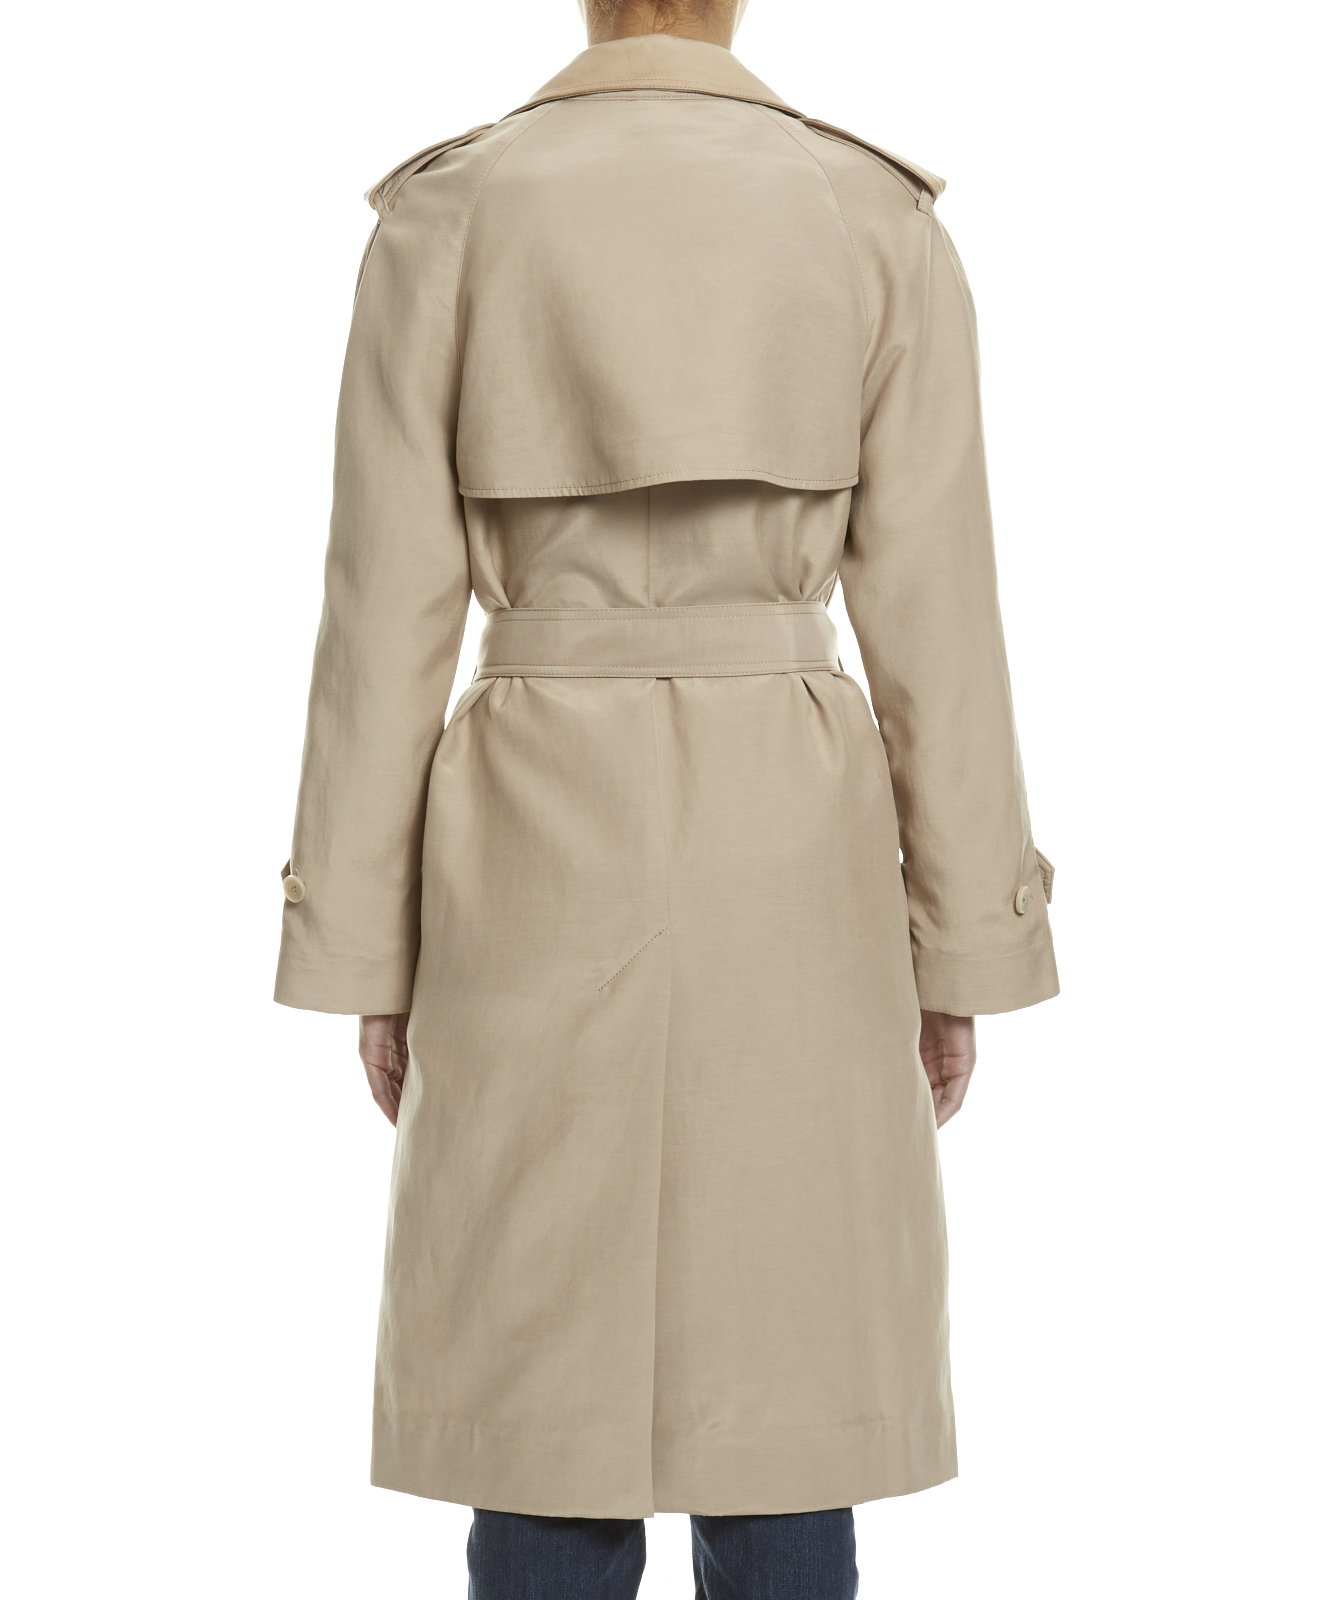 The Iconic Trench, Sportscraft Online